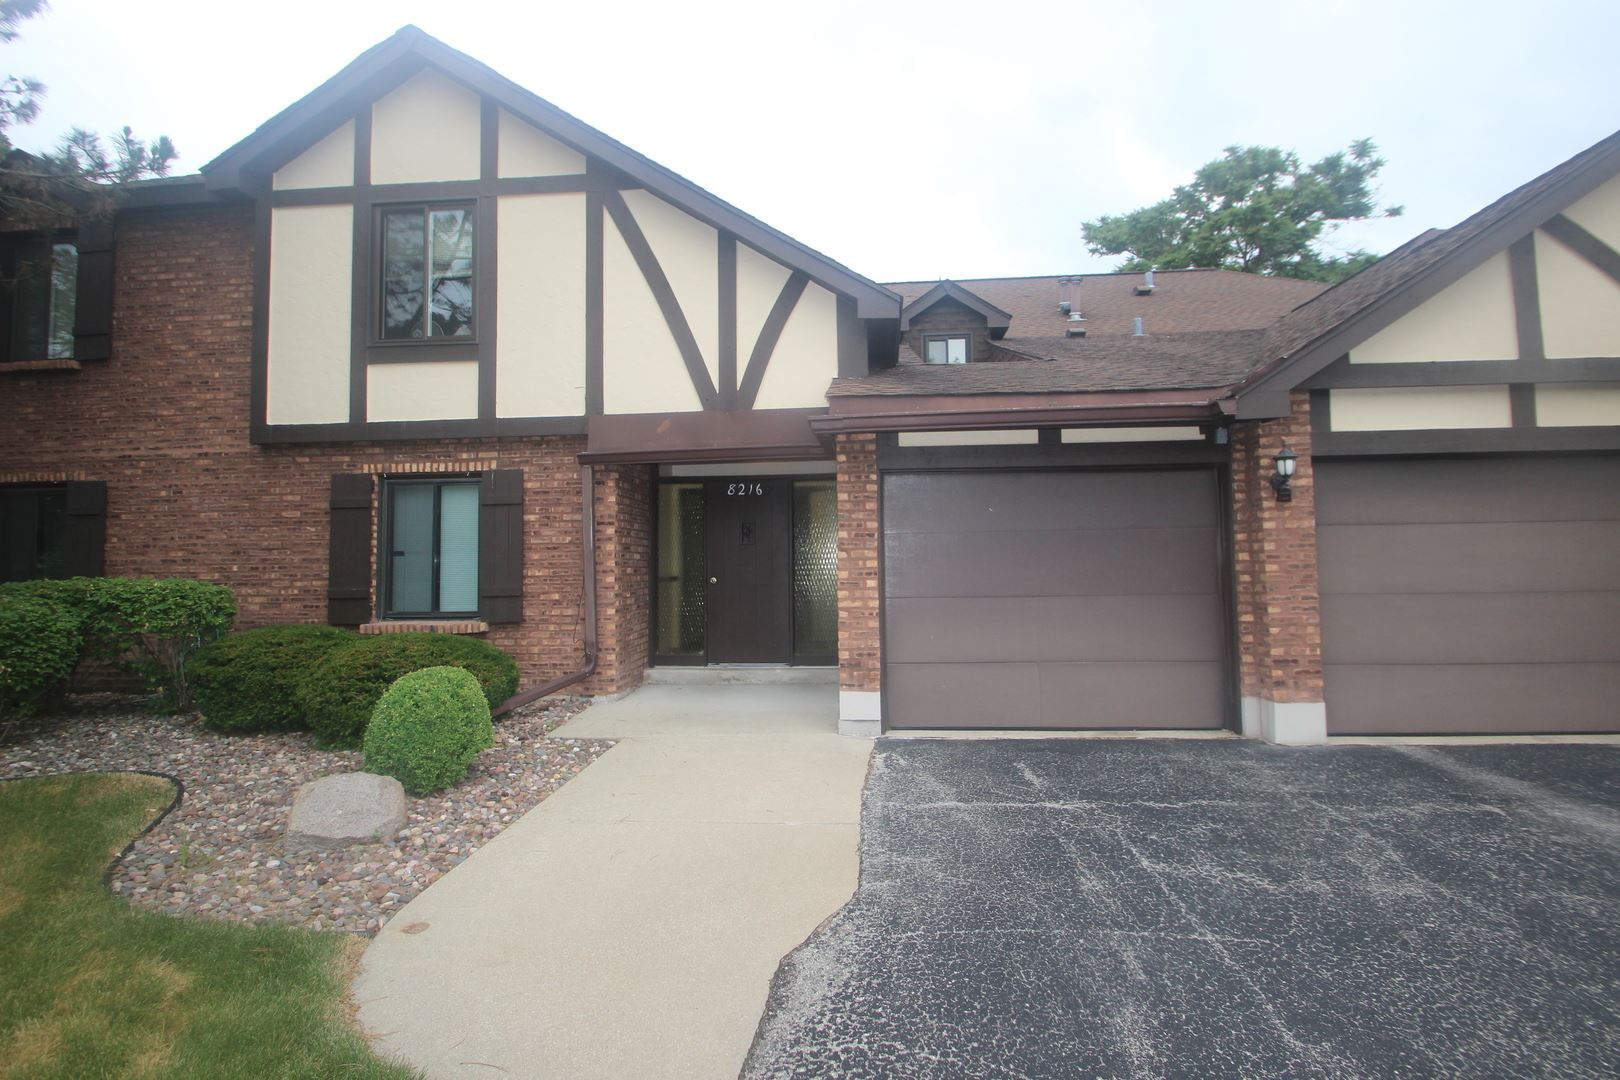 8216 Holly Court #17C, Palos Hills, IL 60465 - #: 10761772